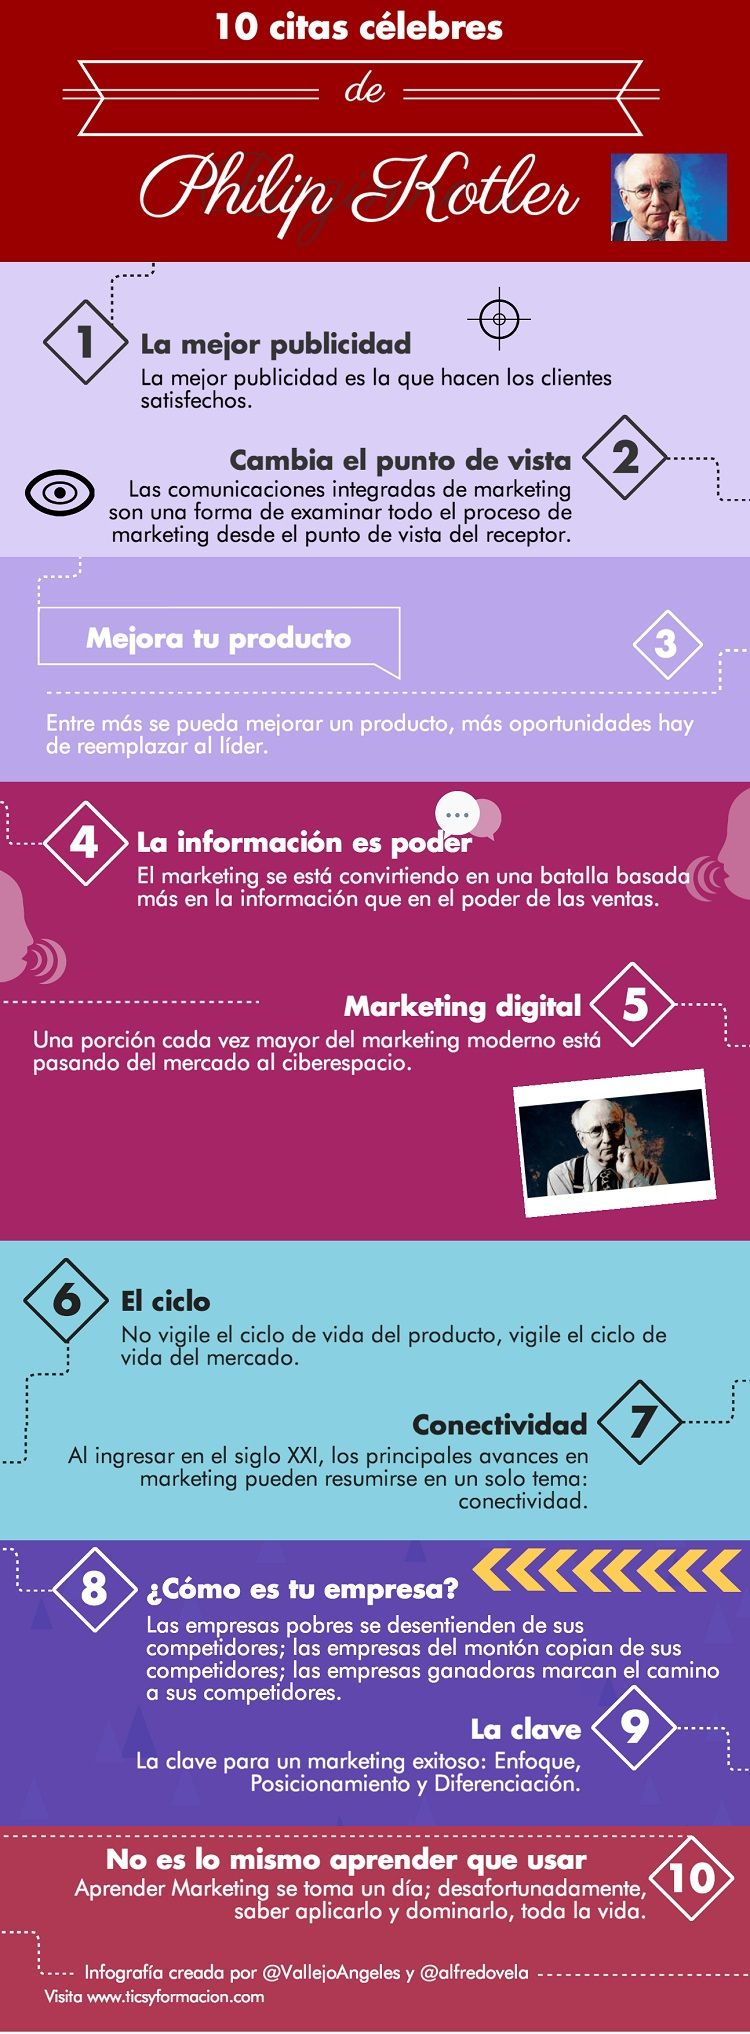 10 Frases de Philip Kotler, el padre del marketing moderno